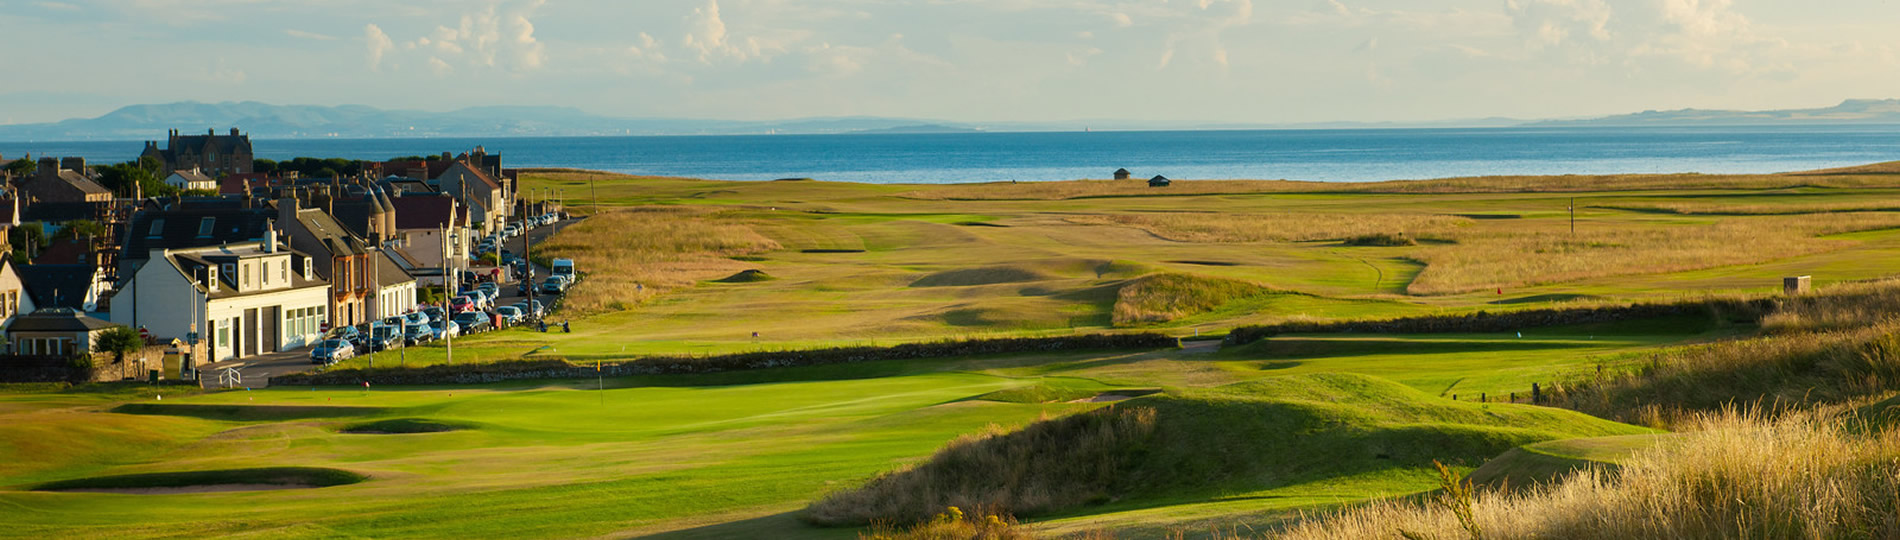 Course Information | Golf House Club Elie, Fife